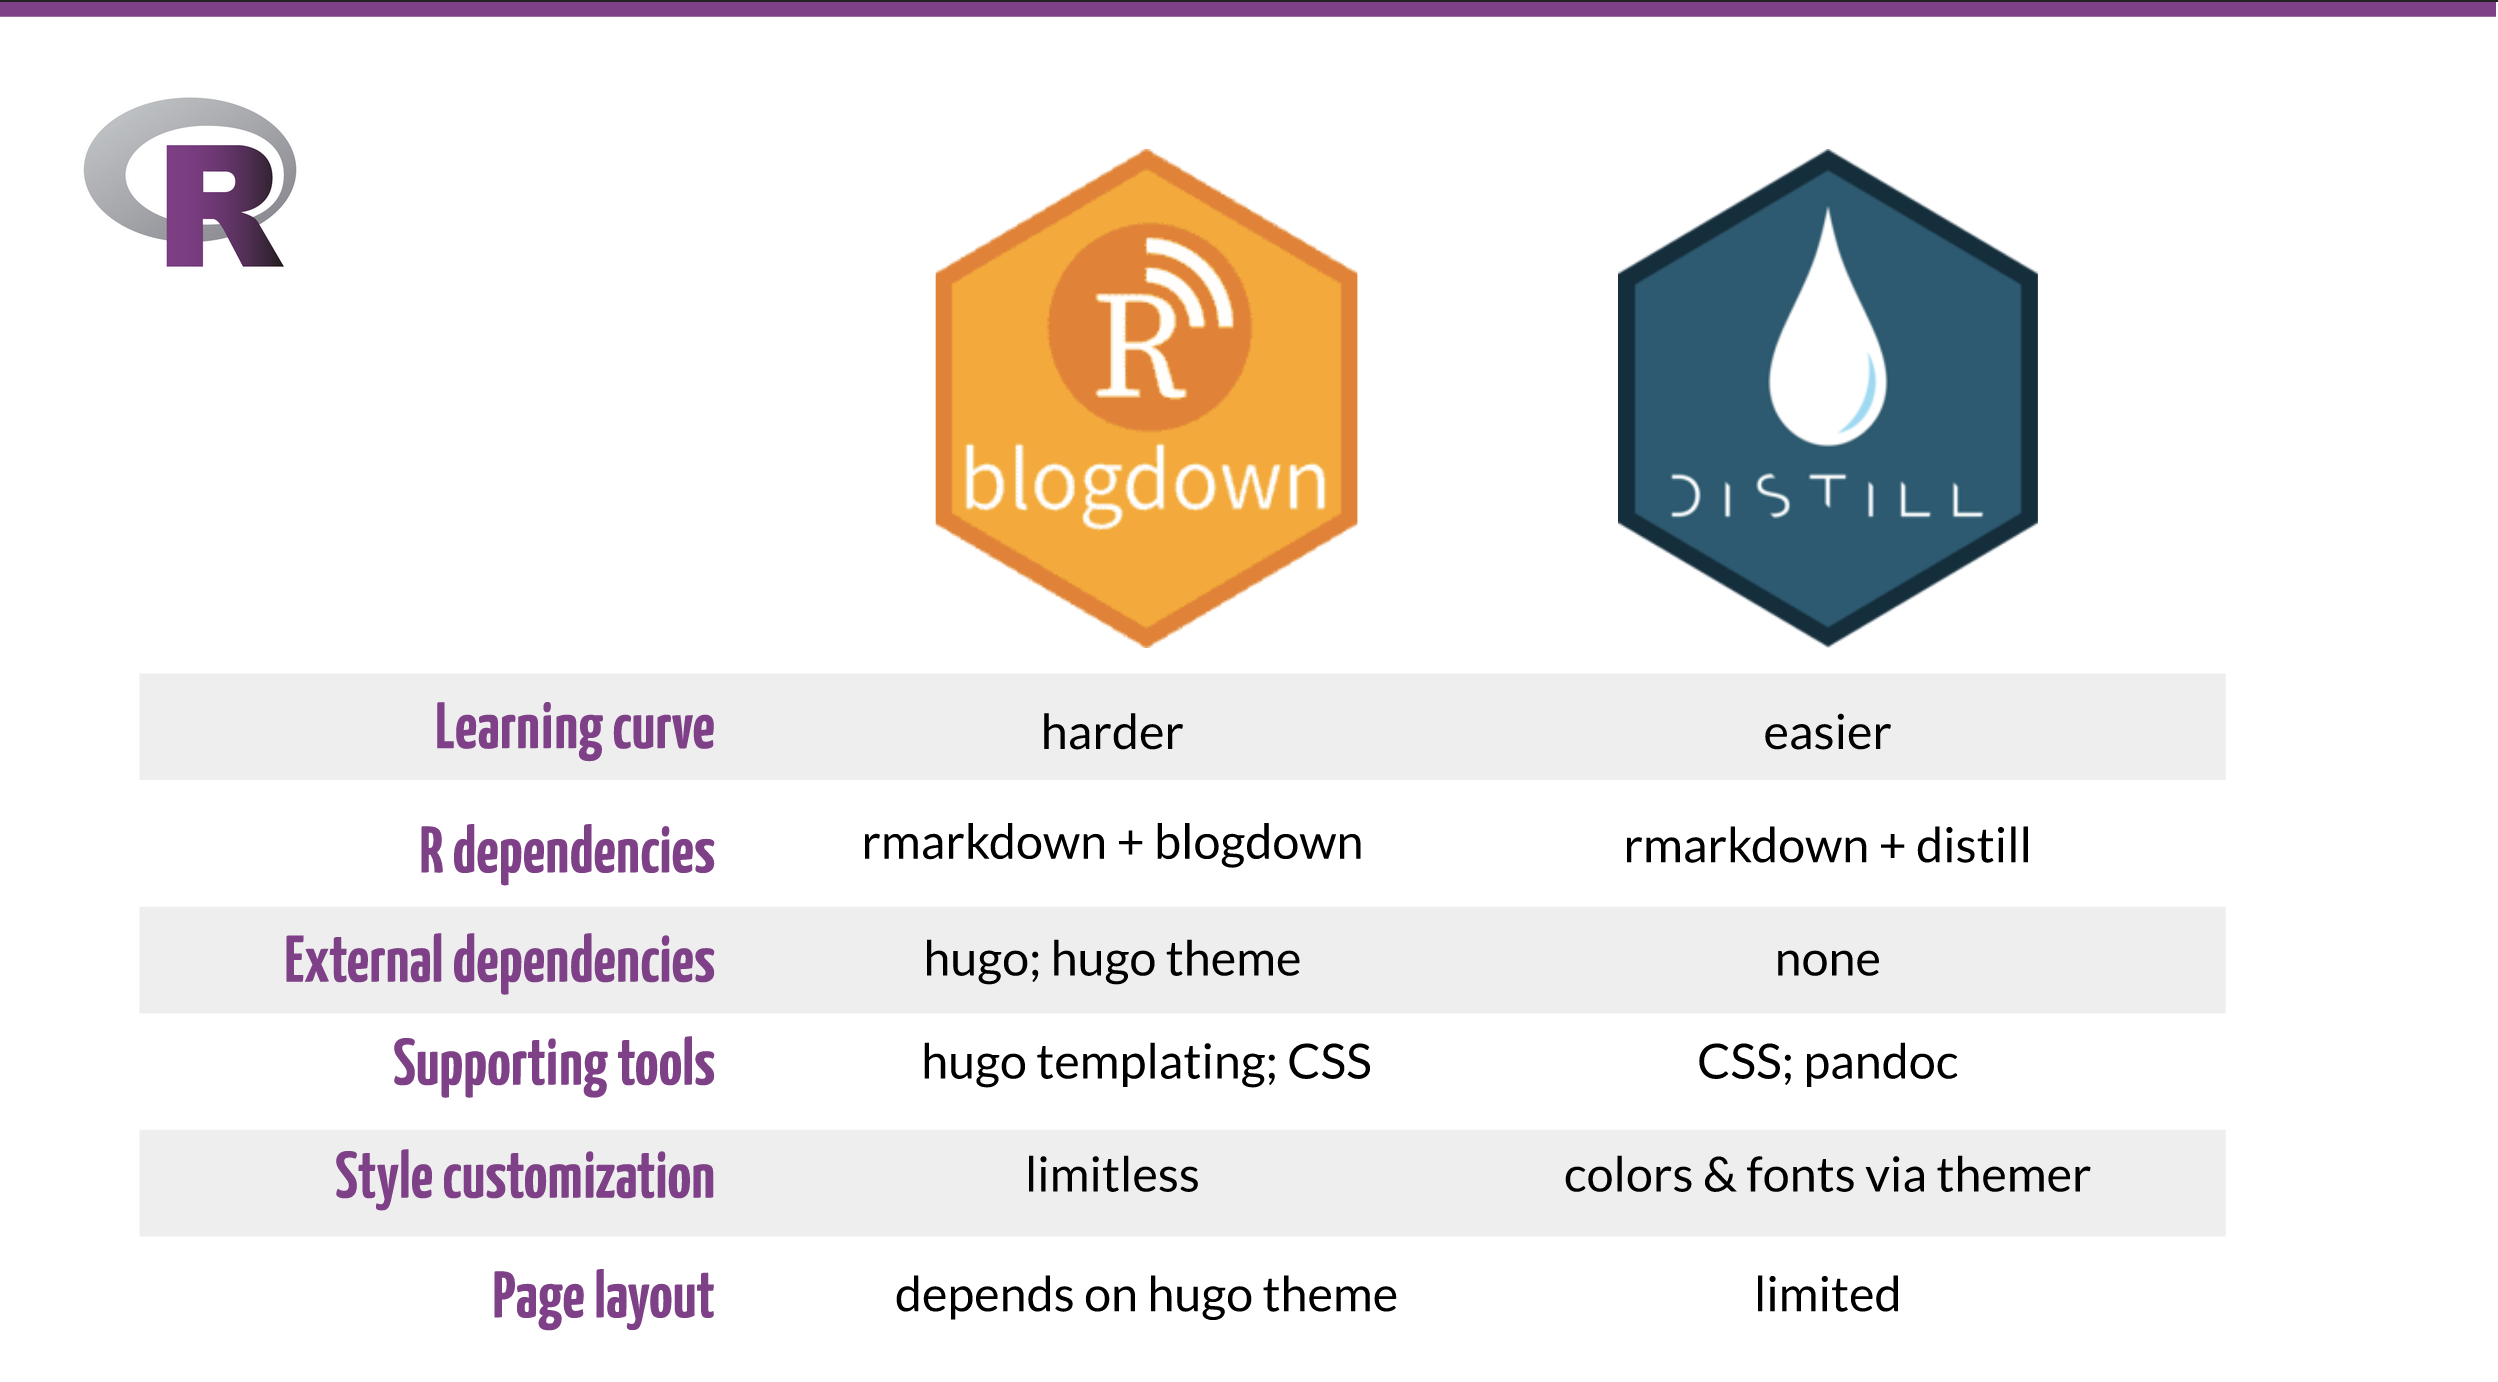 R-Ladies style includes purple accents and R logo; slide shows tabular layout comparing distill to blogdown on attributes of learning curve, dependencies, supporting tools, customization, and layout.